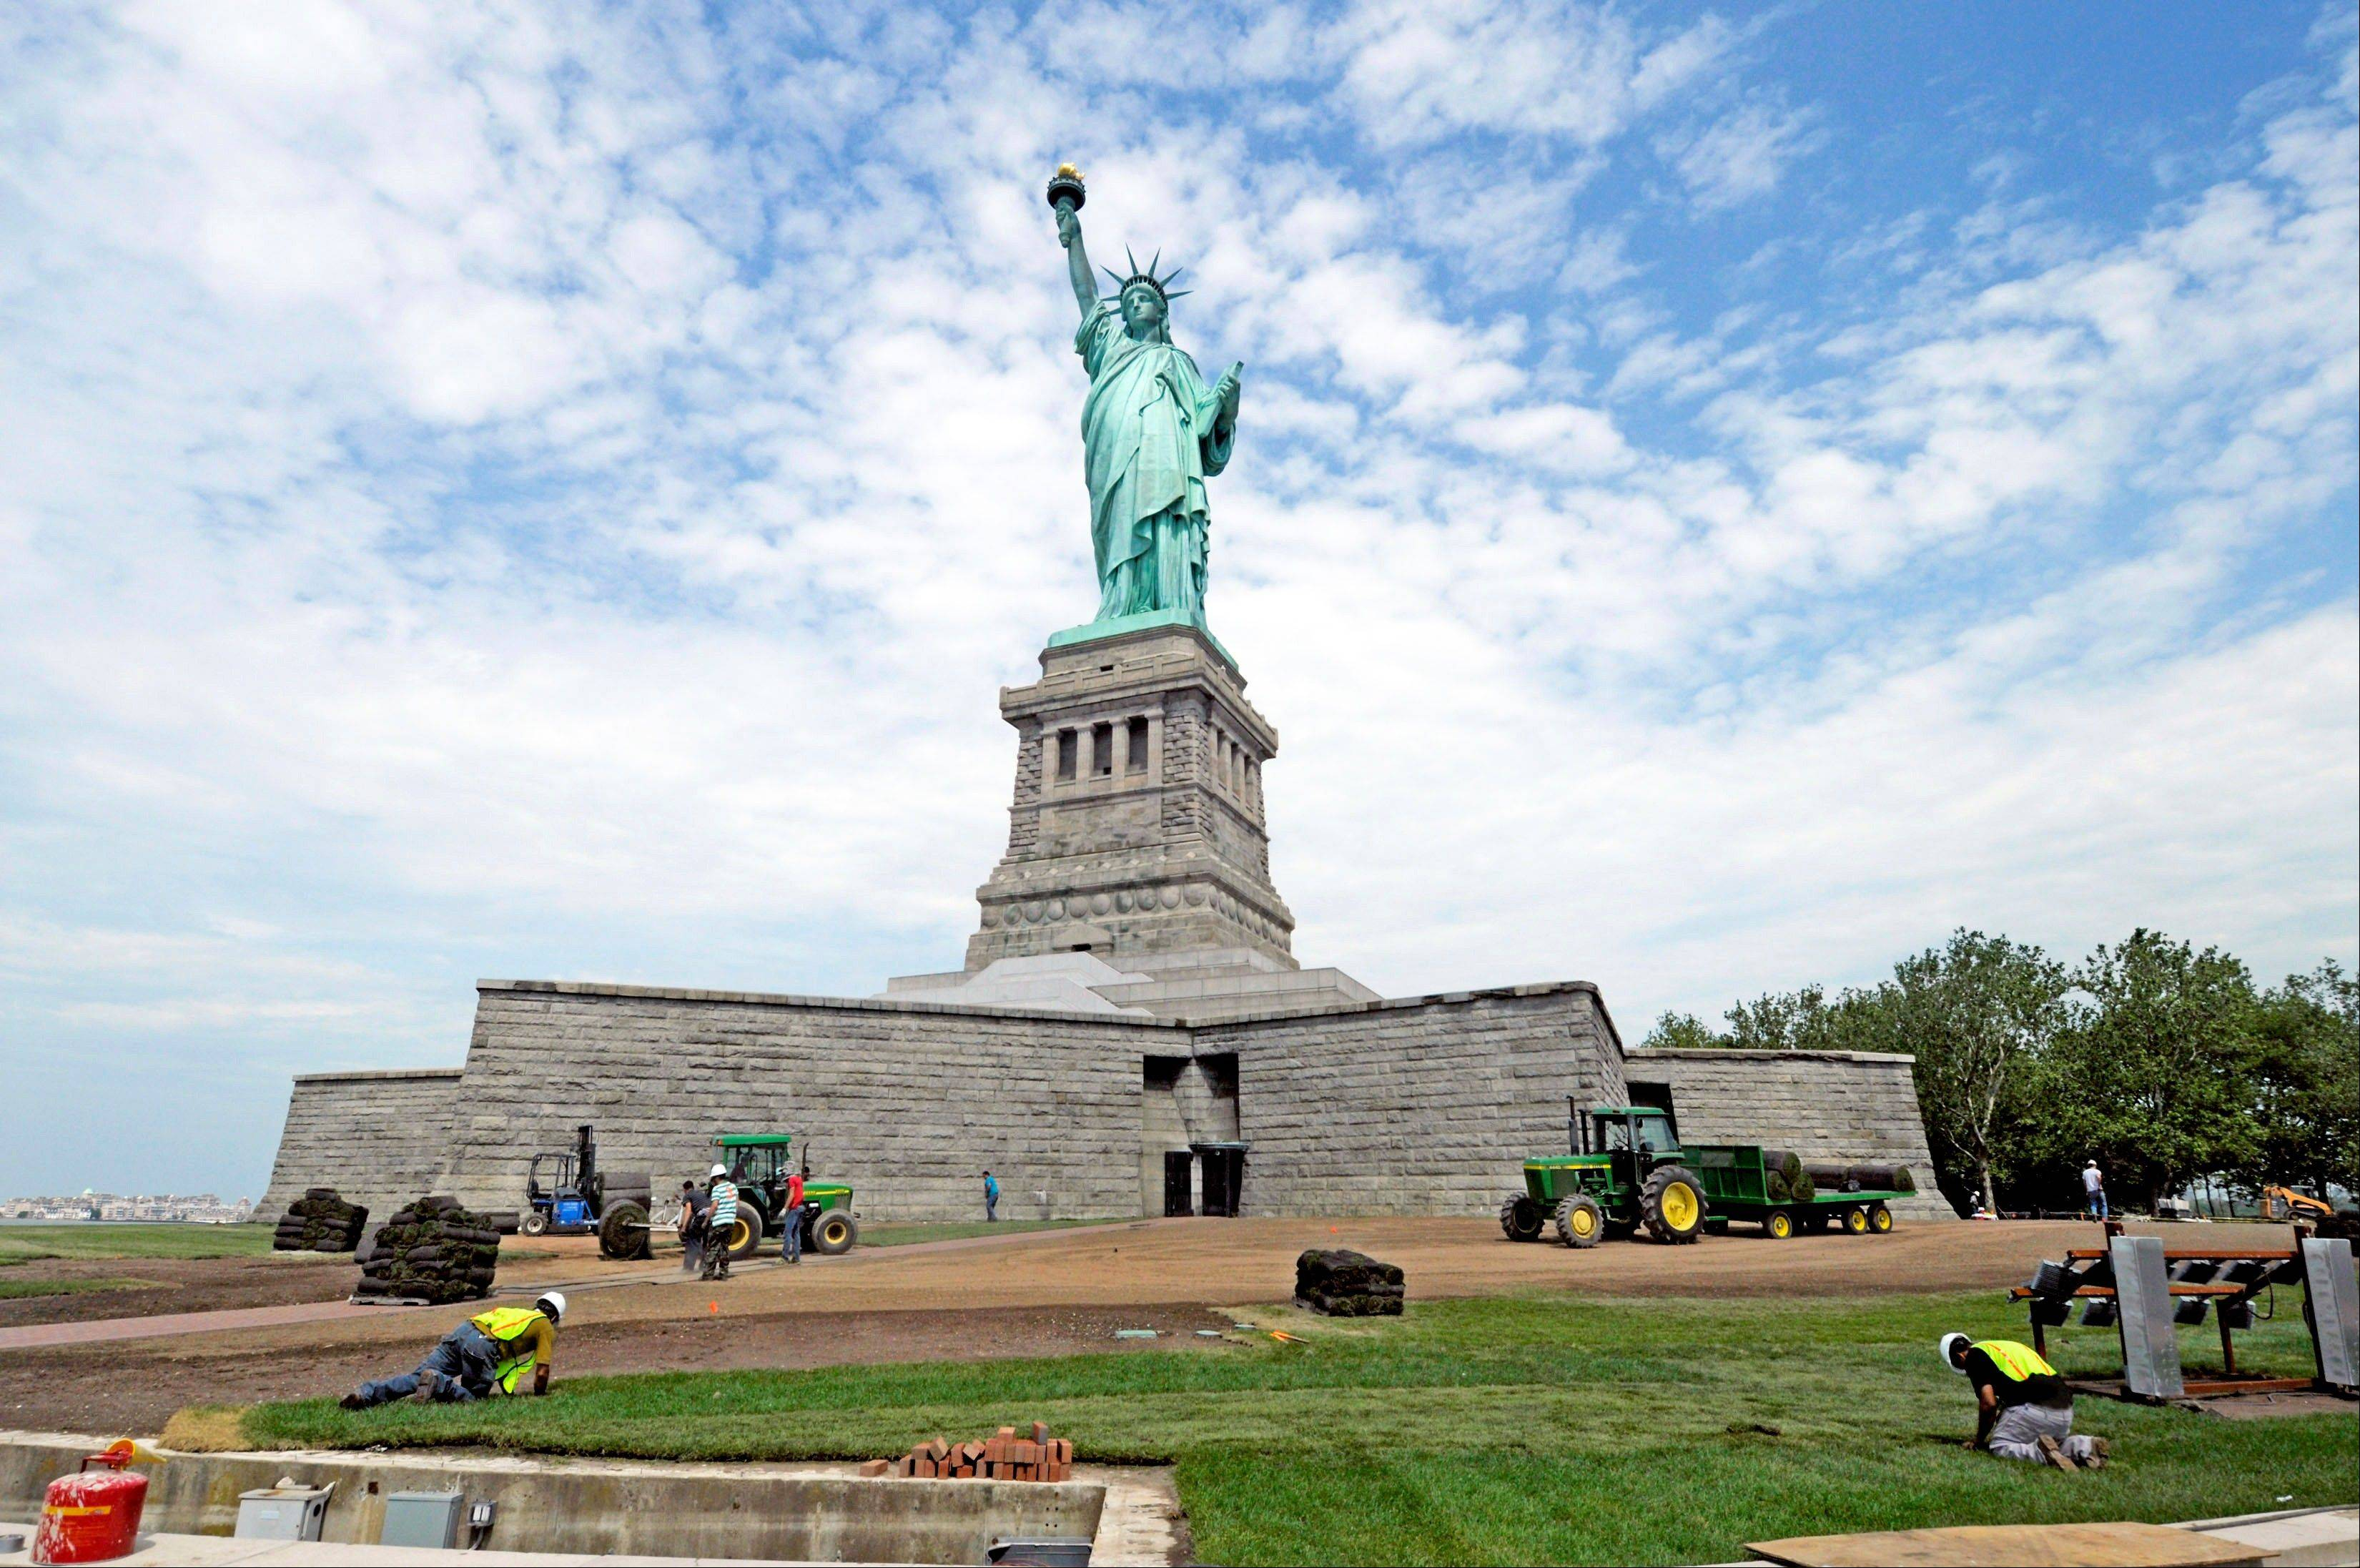 In this June 26, 2013 photo provided by the National Park Service, workers on Liberty Island install sod around the national monument which is set to re-open on the 4th of July, in New York. Months after railings broke, docks and paving stones were torn up and buildings were flooded by Superstorm Sandy, the Statue of Liberty will finally welcome visitors again.